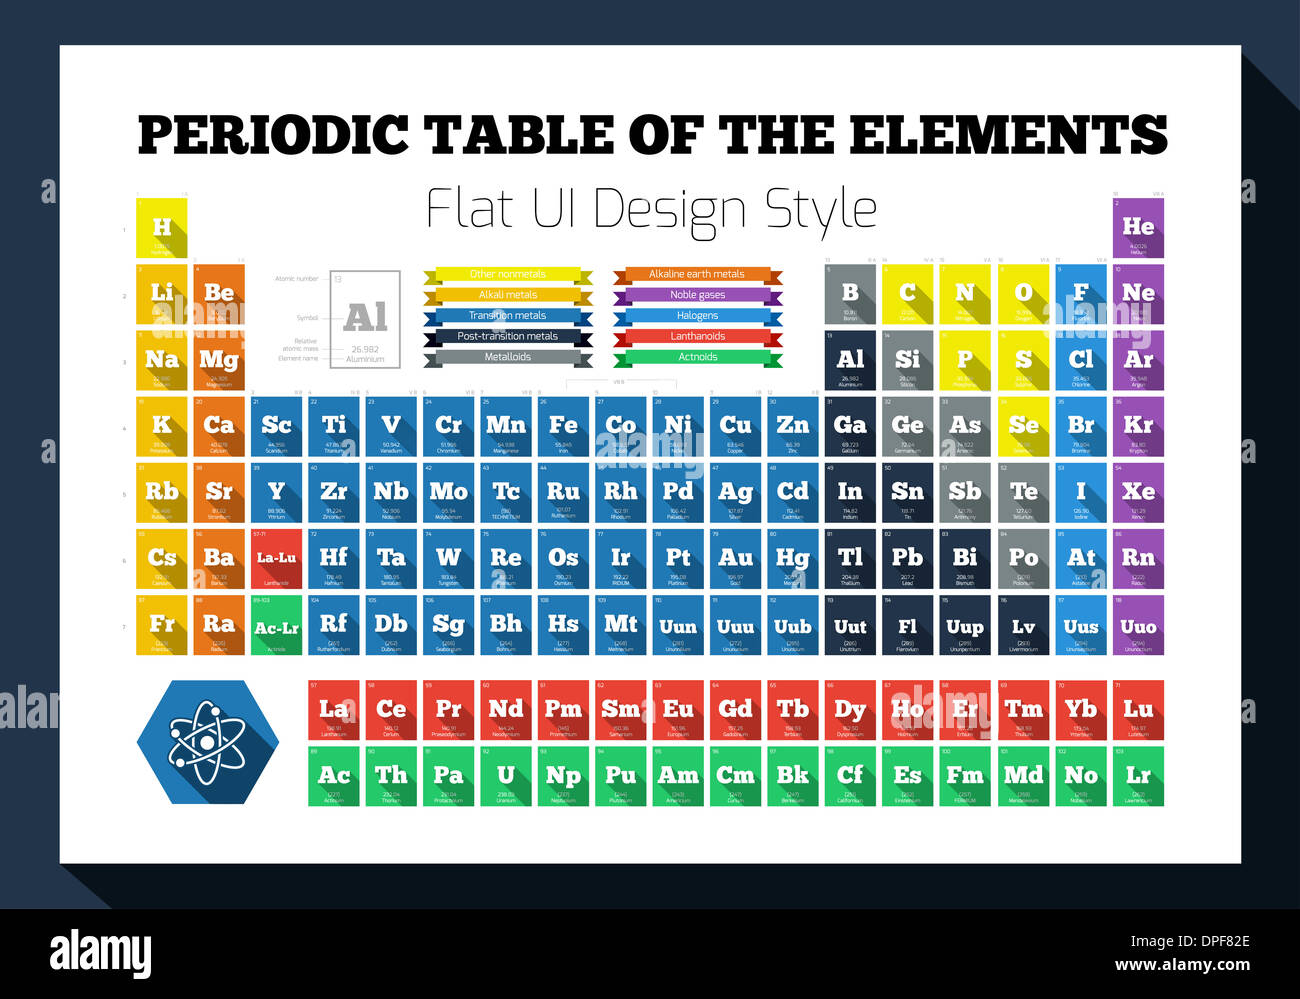 Lawrencium periodic table gallery periodic table images periodic table unununium gallery periodic table images uuu element periodic table images periodic table images periodic gamestrikefo Images